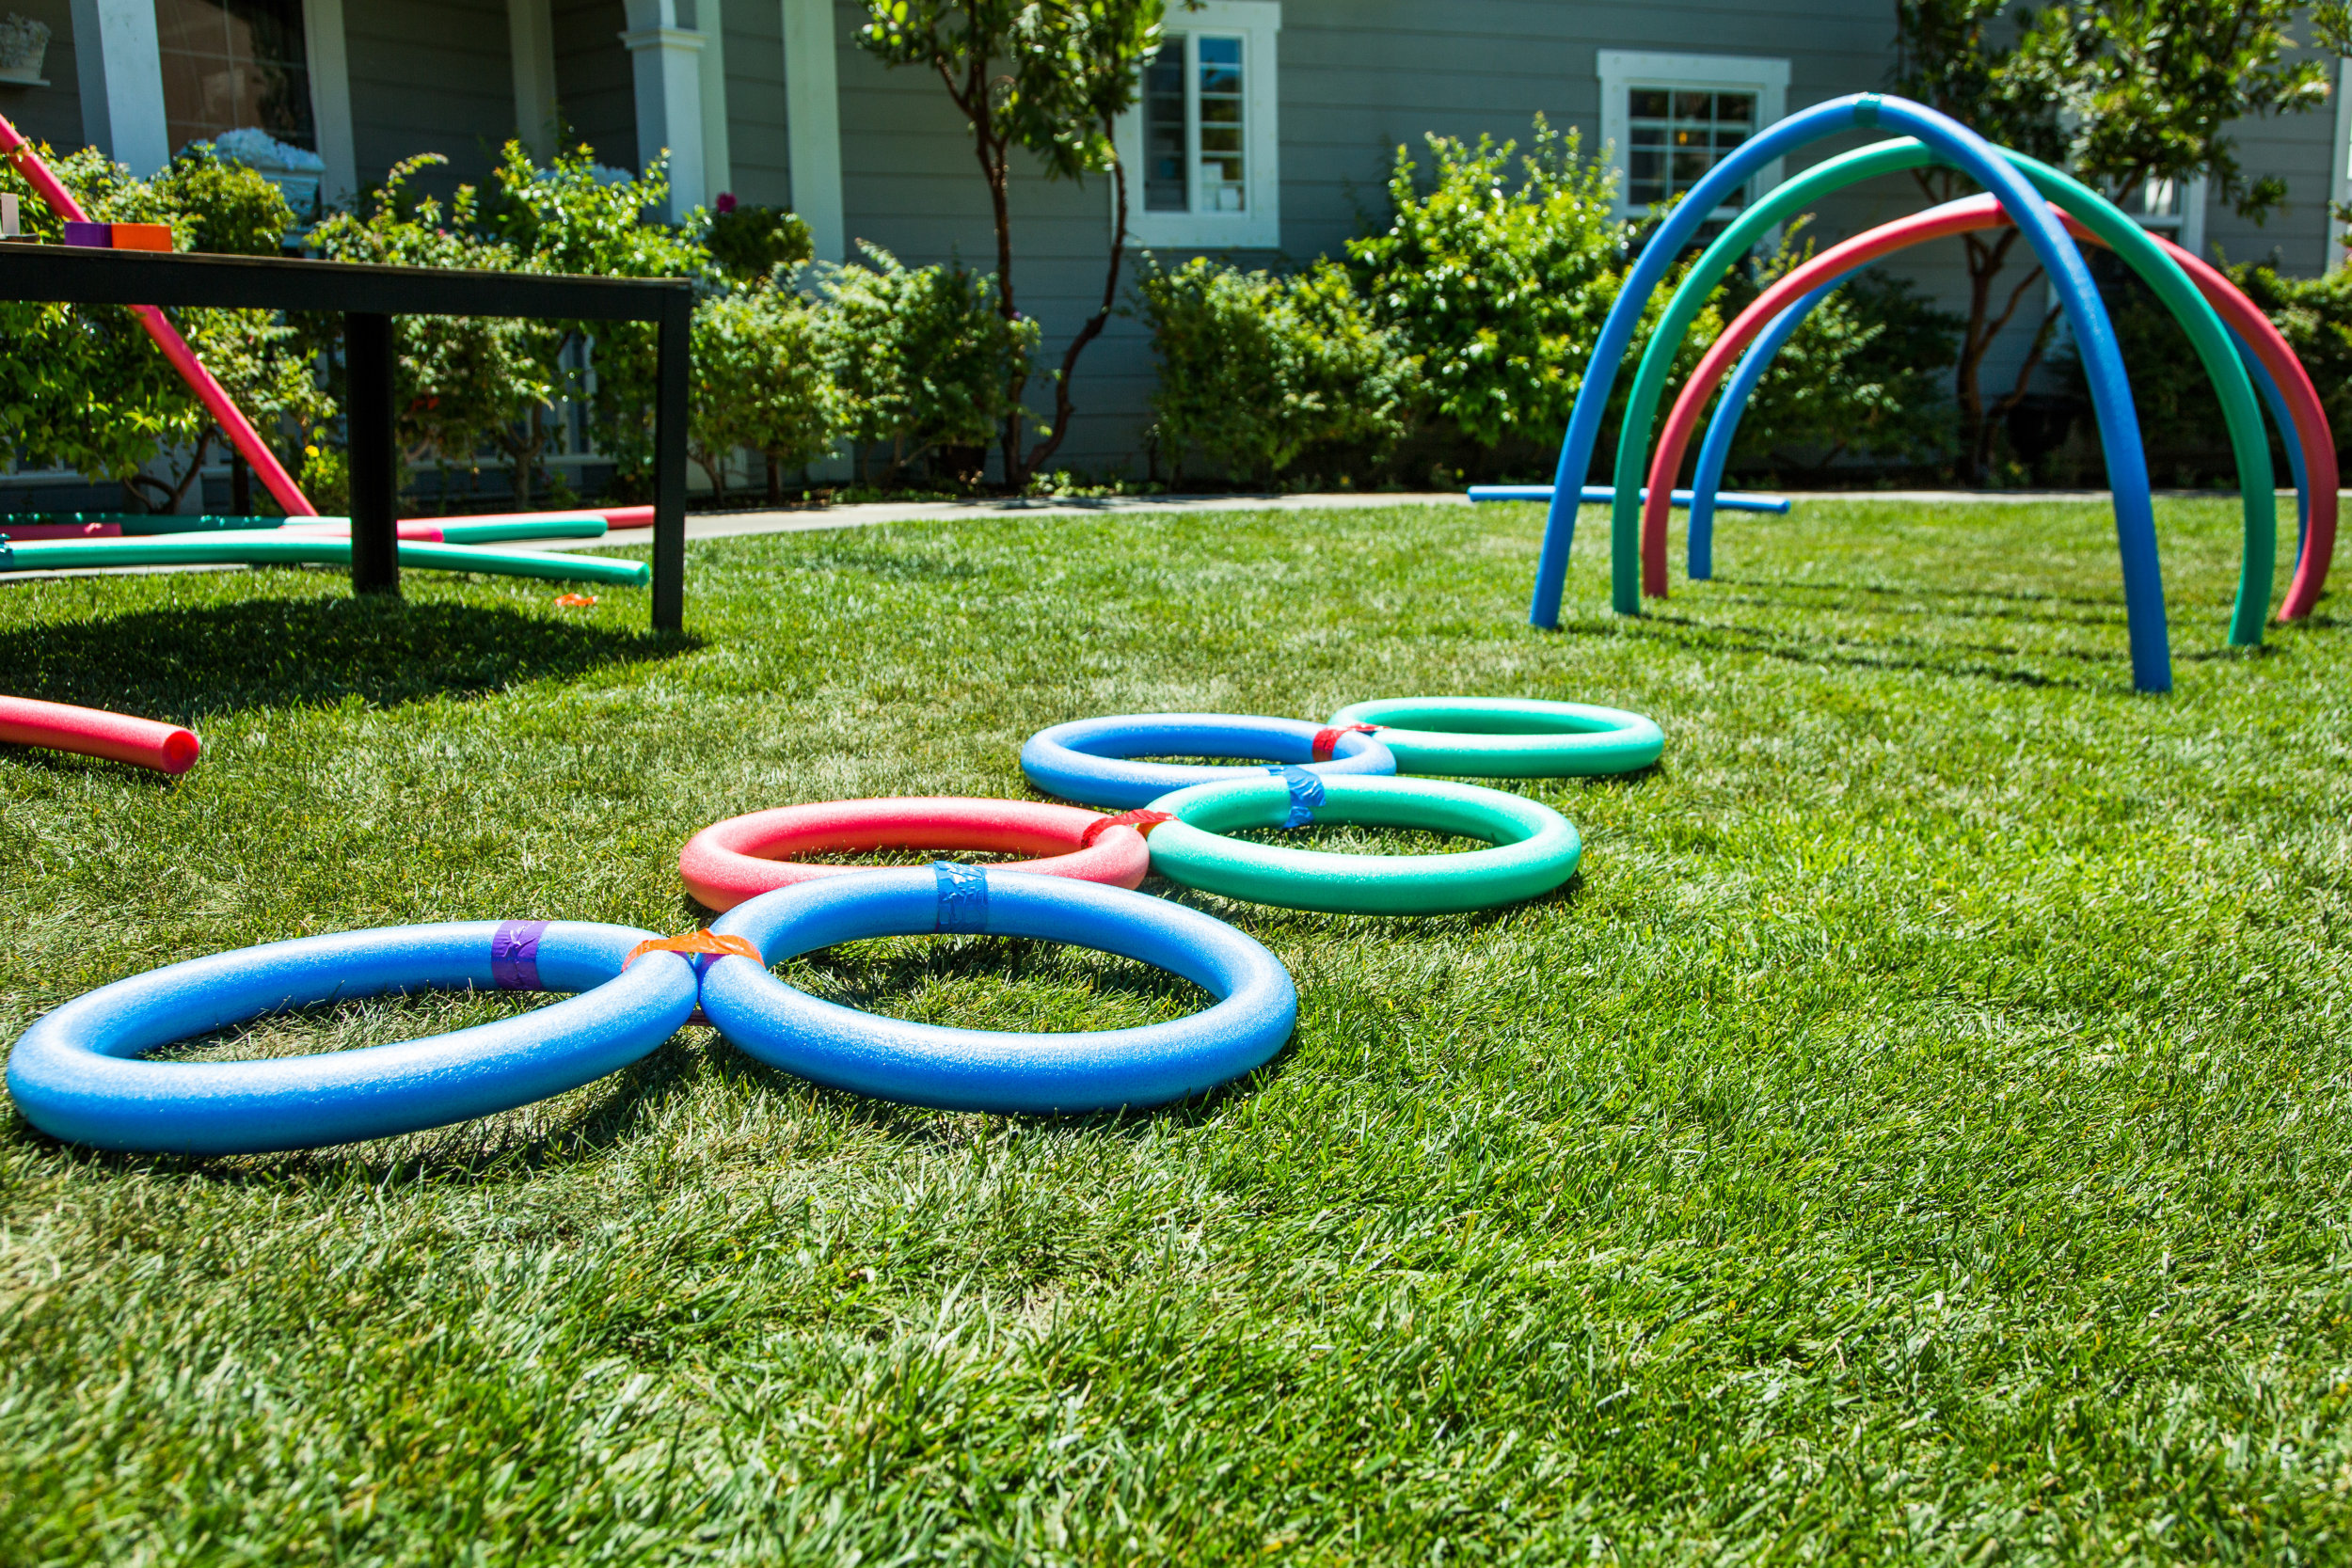 How To Home & Family DIY Backyard Fun with Pool Noodles